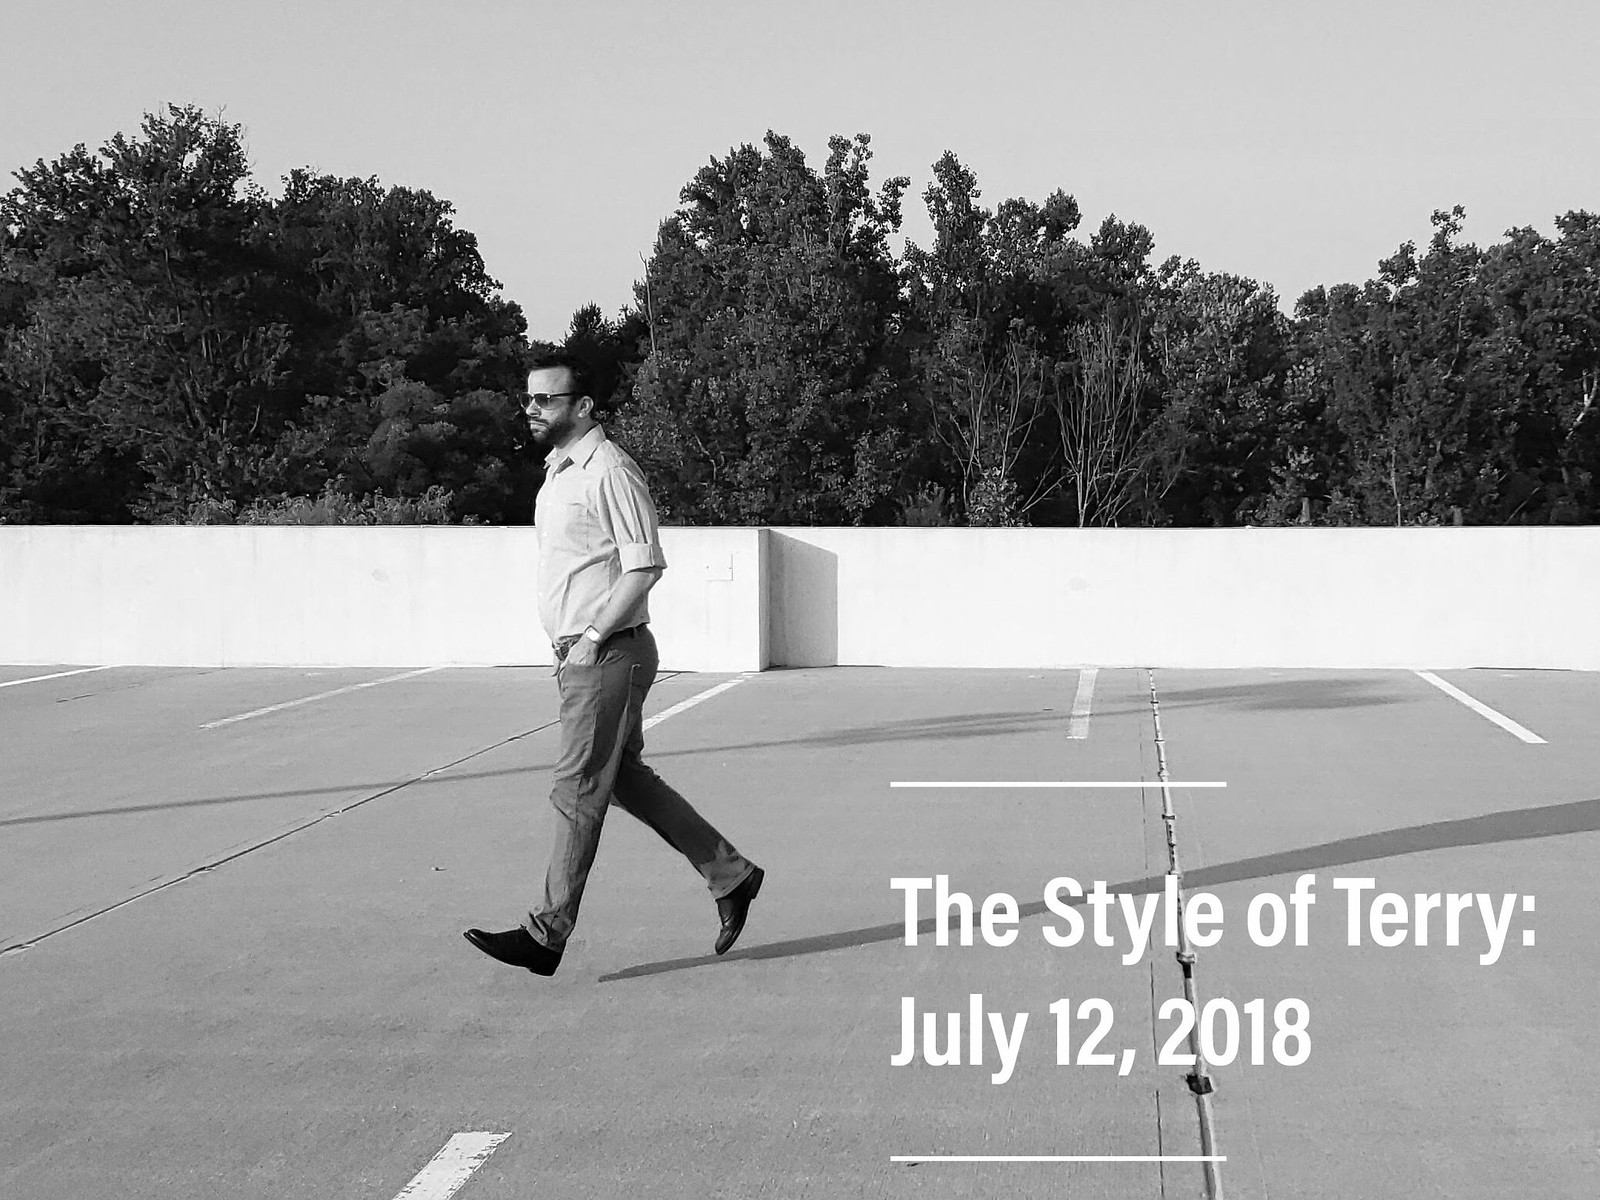 The Style of Terry: 7.12.18